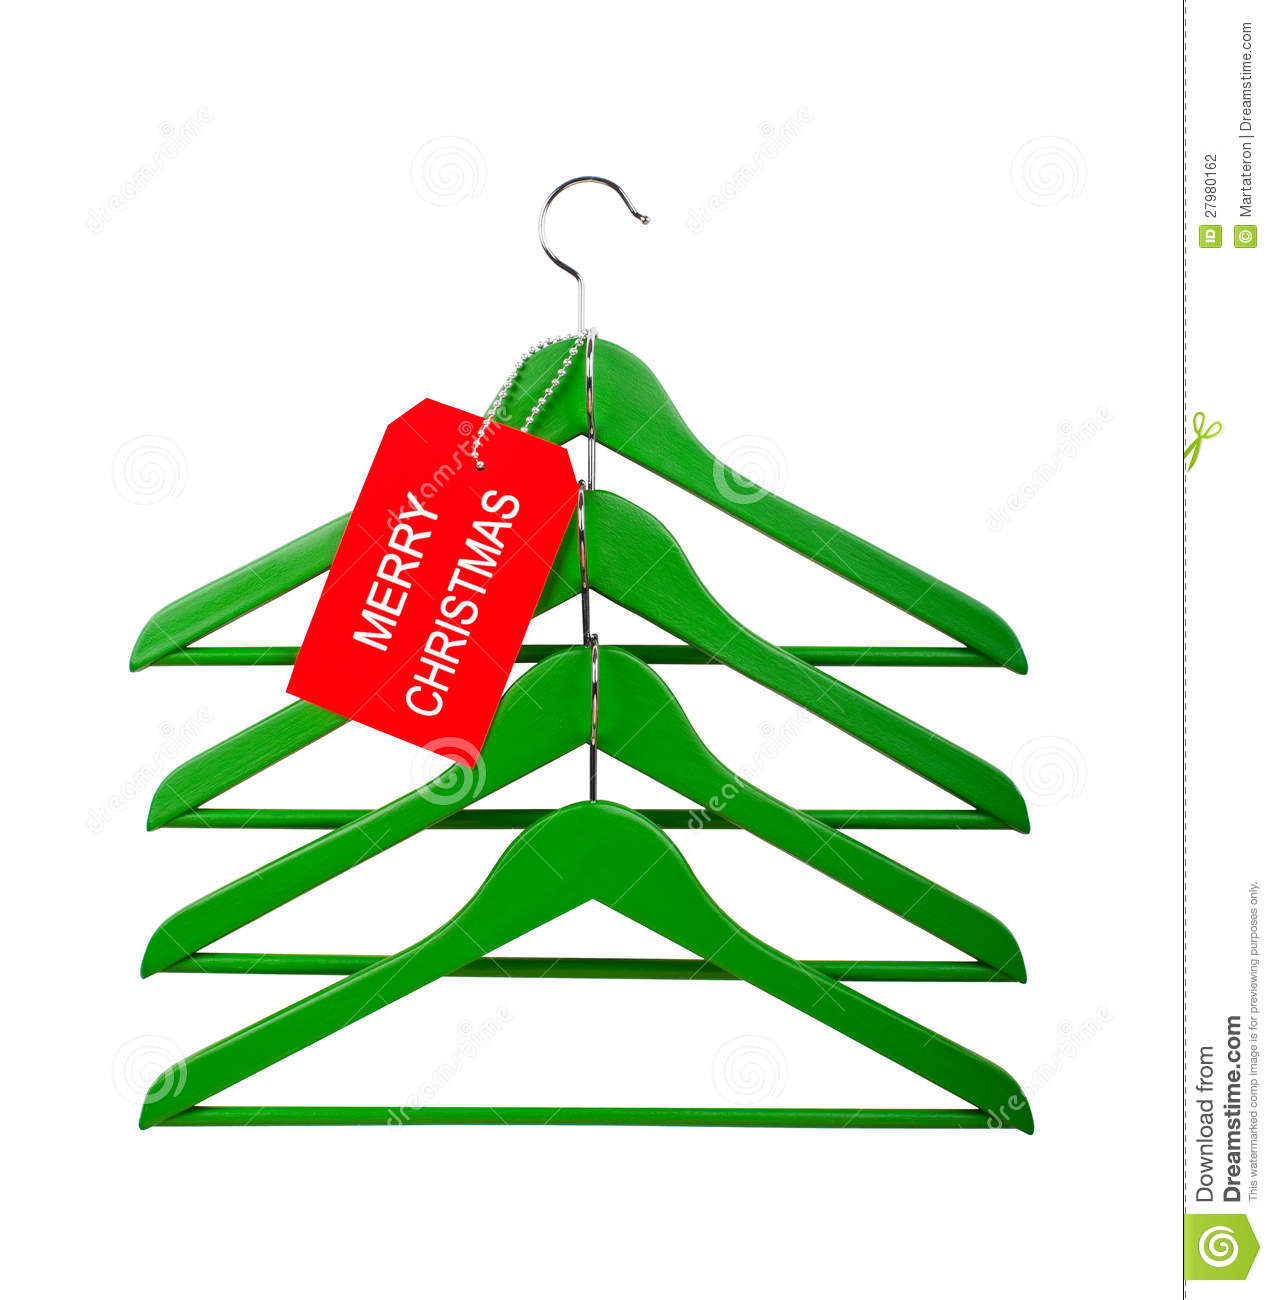 christmas clothes form hangers tree - Clothes Tree